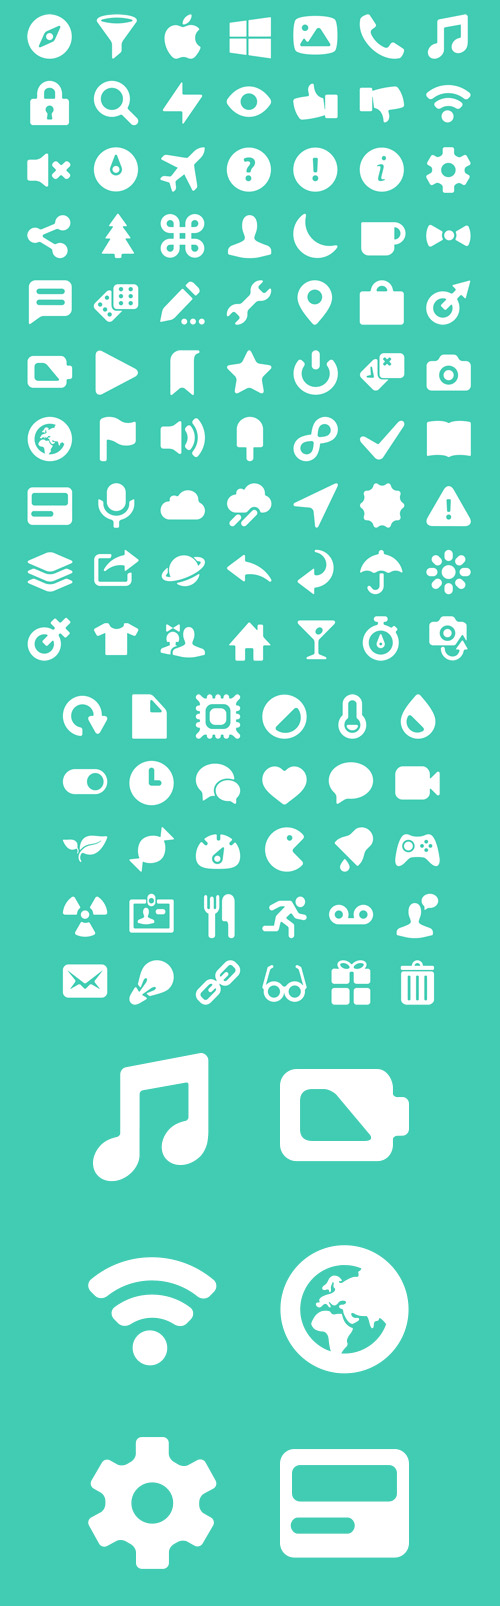 Pixel Perfect Icon Set #flaticons2014 #vectoricons #freeicons #iconsfordesigners #flatelements #appicons #webicons #mobileicons